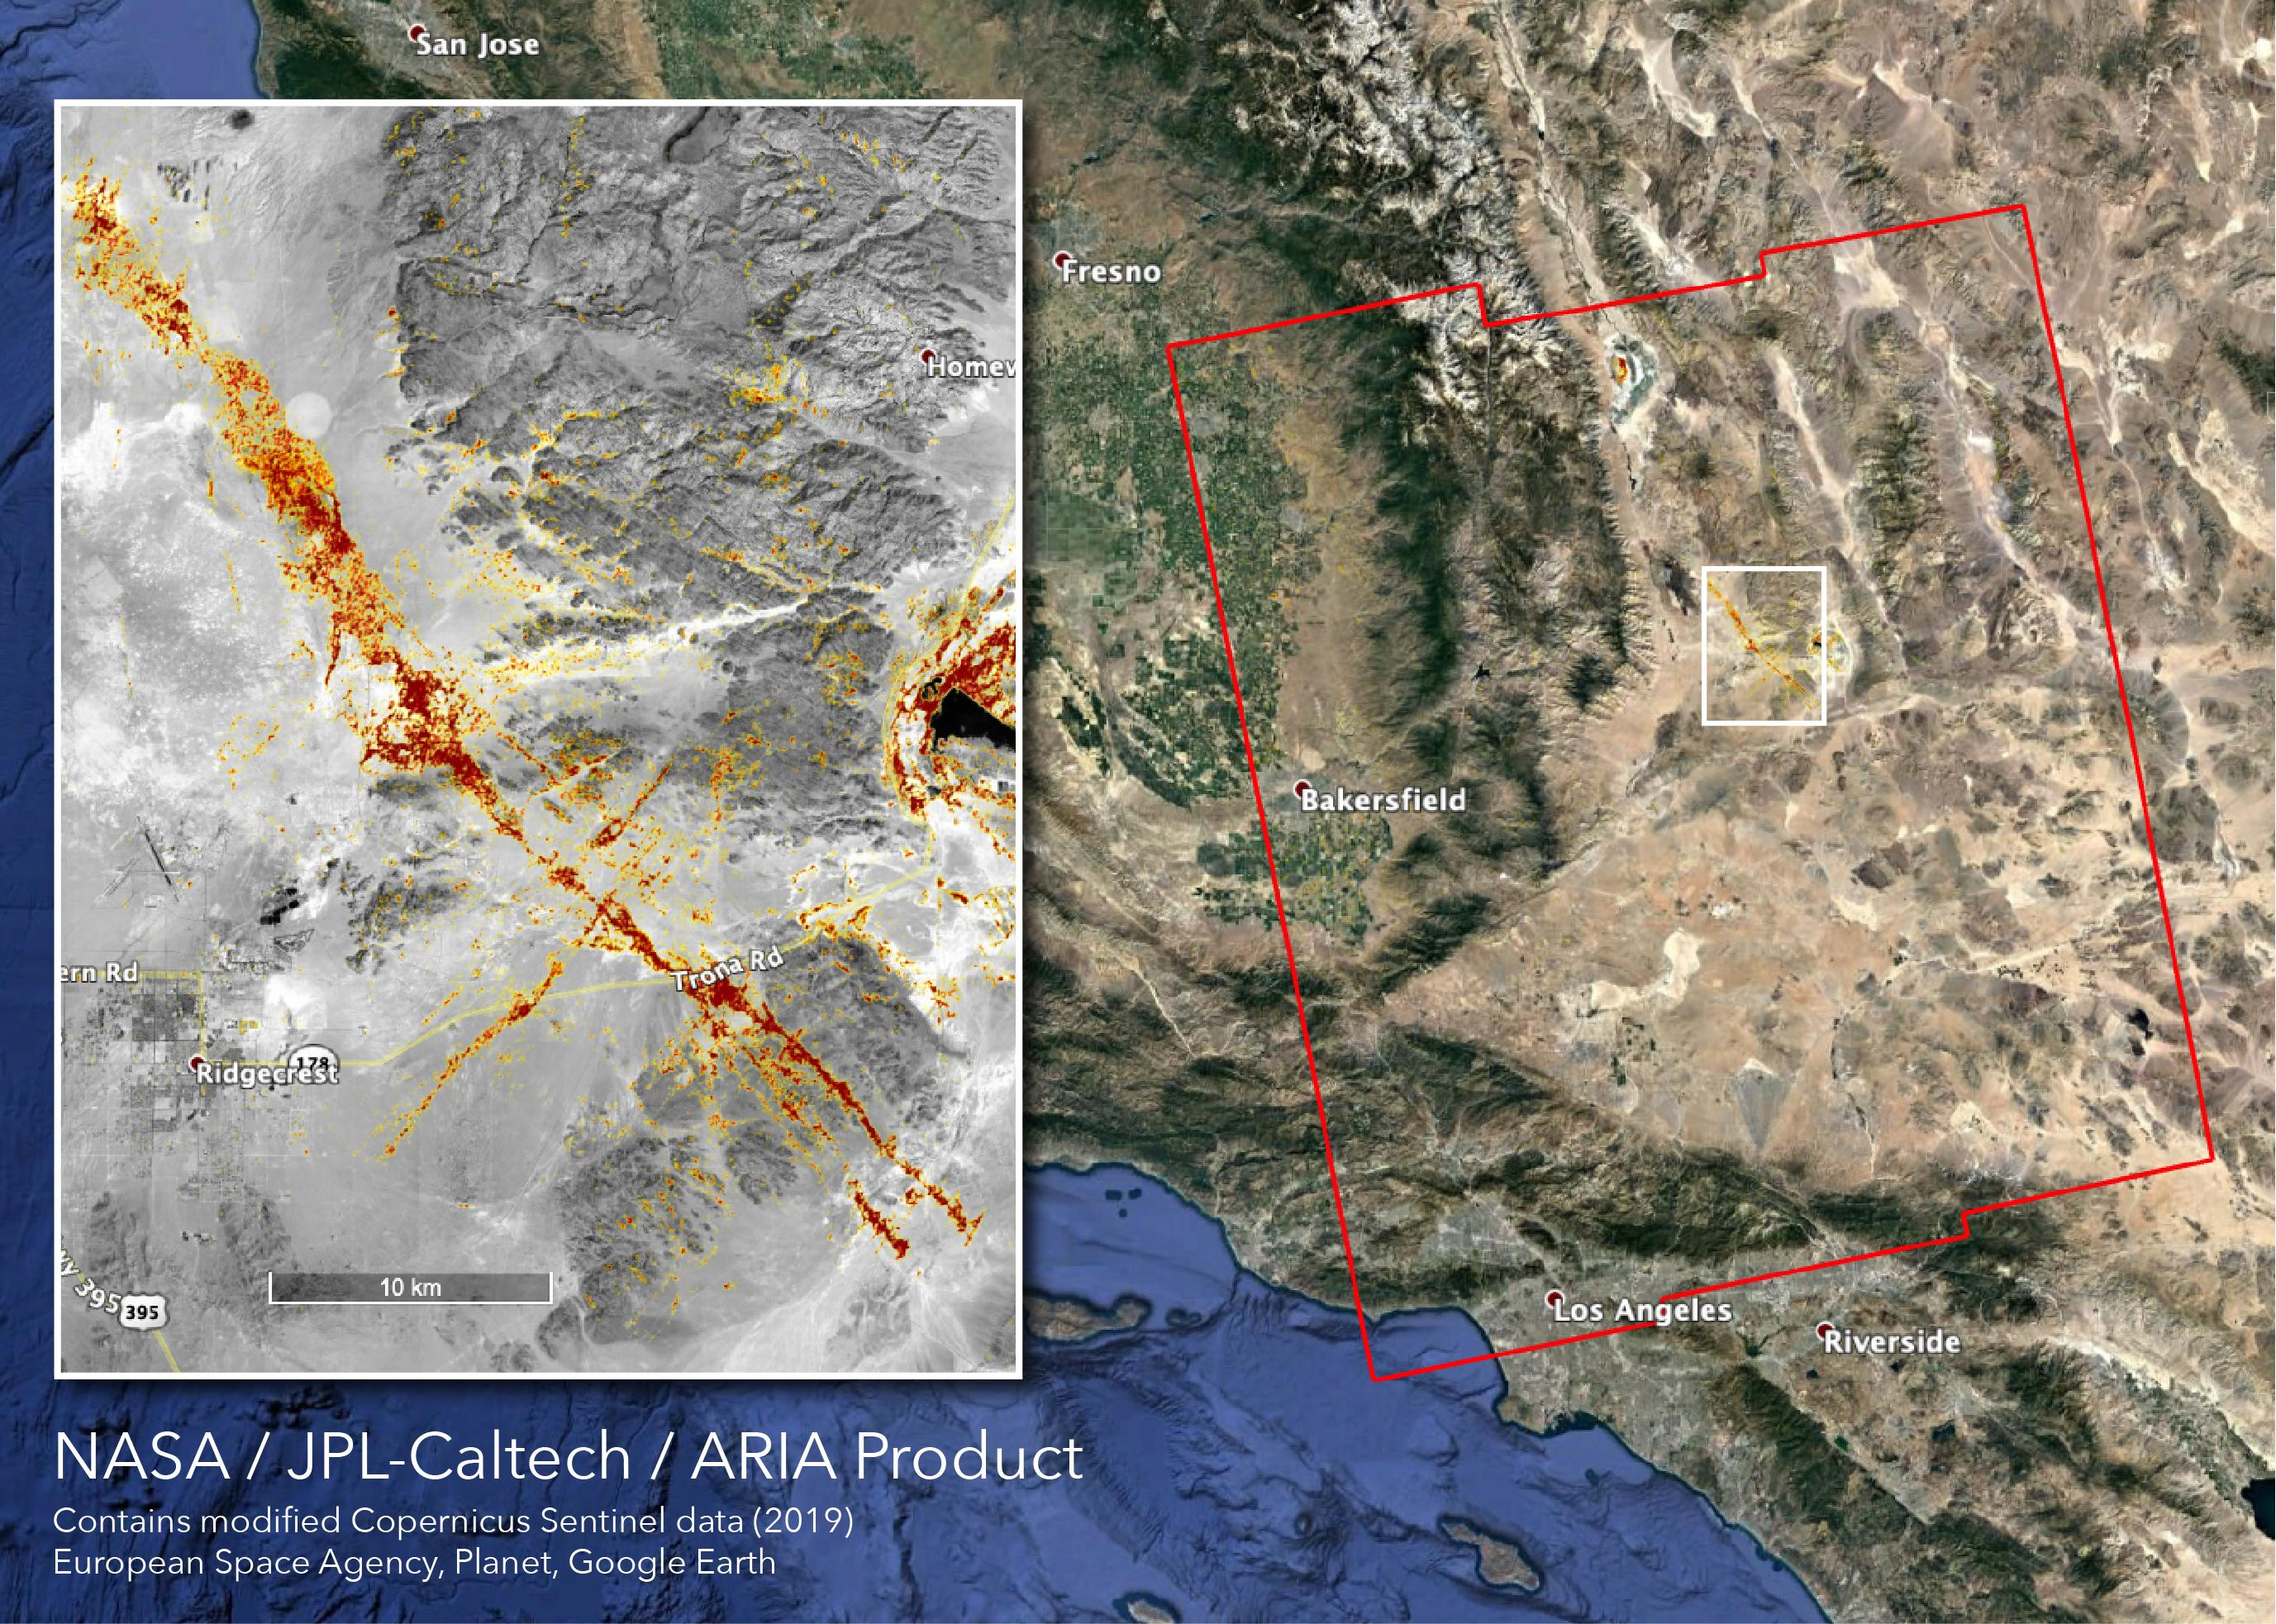 NASAs ARIA team produced this map of earthquake damage in Southern California from the recent temblors in July, 2019.